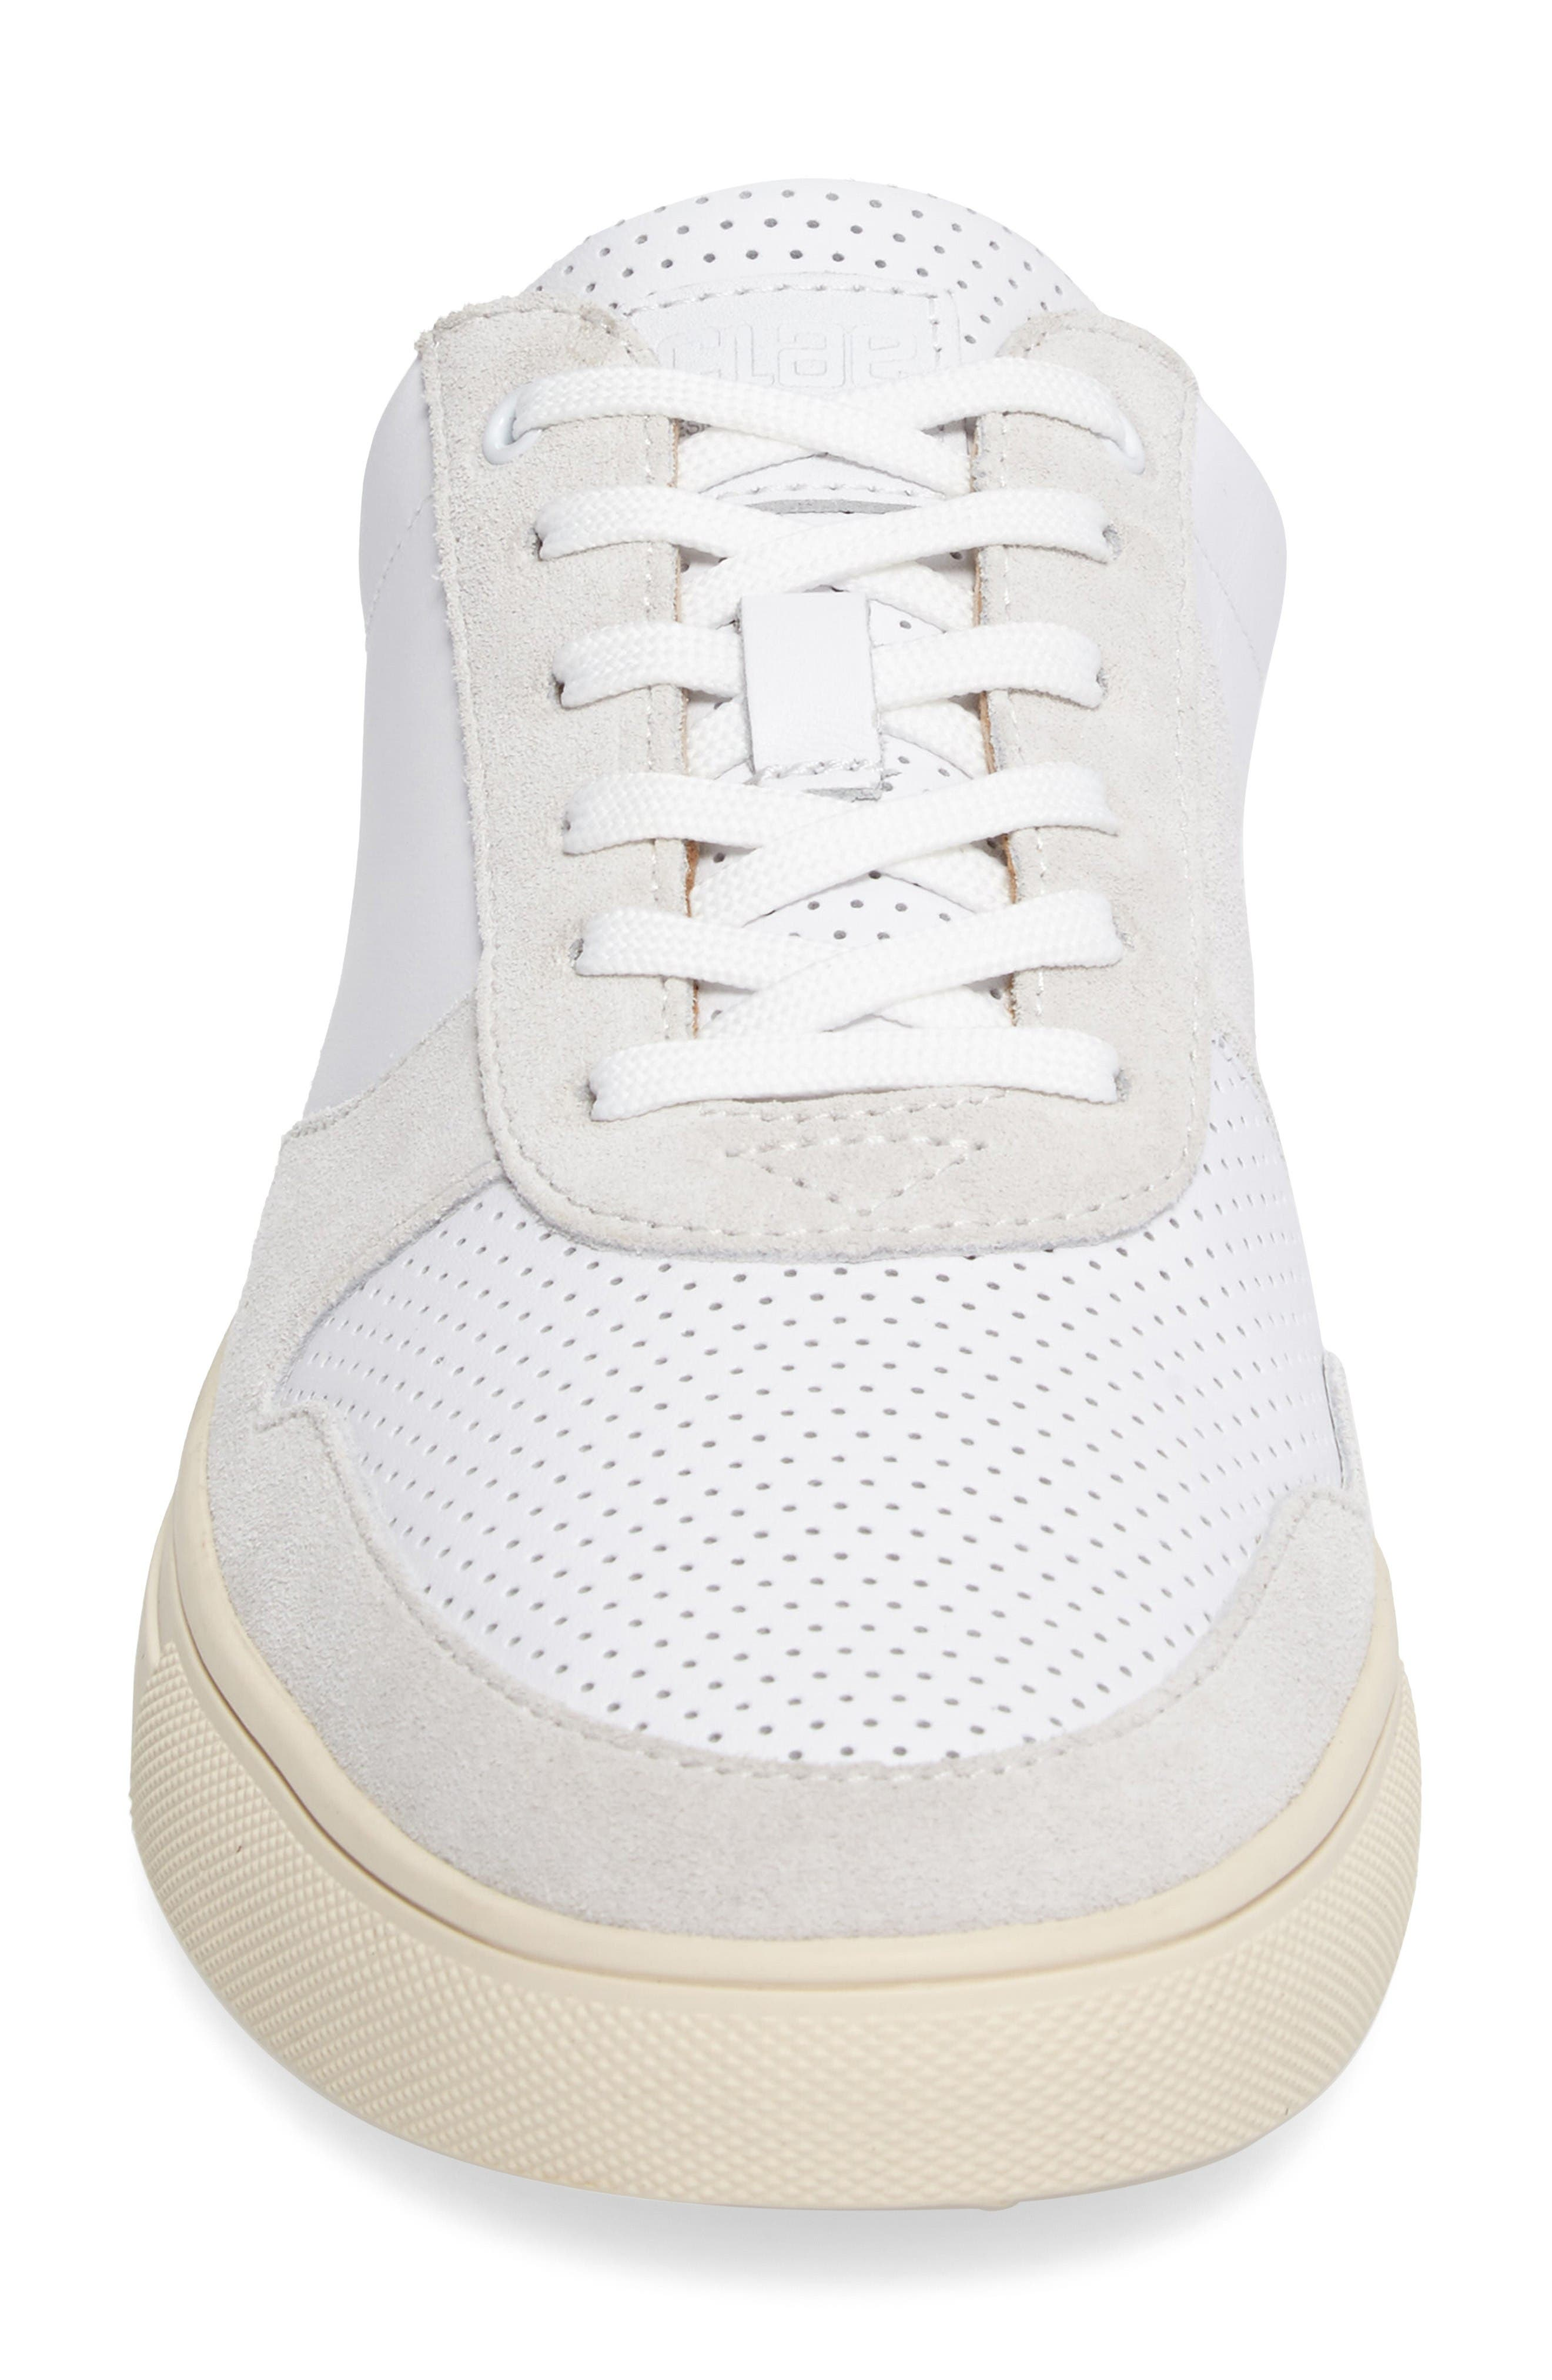 'Gregory' Sneaker,                             Alternate thumbnail 4, color,                             White Leather